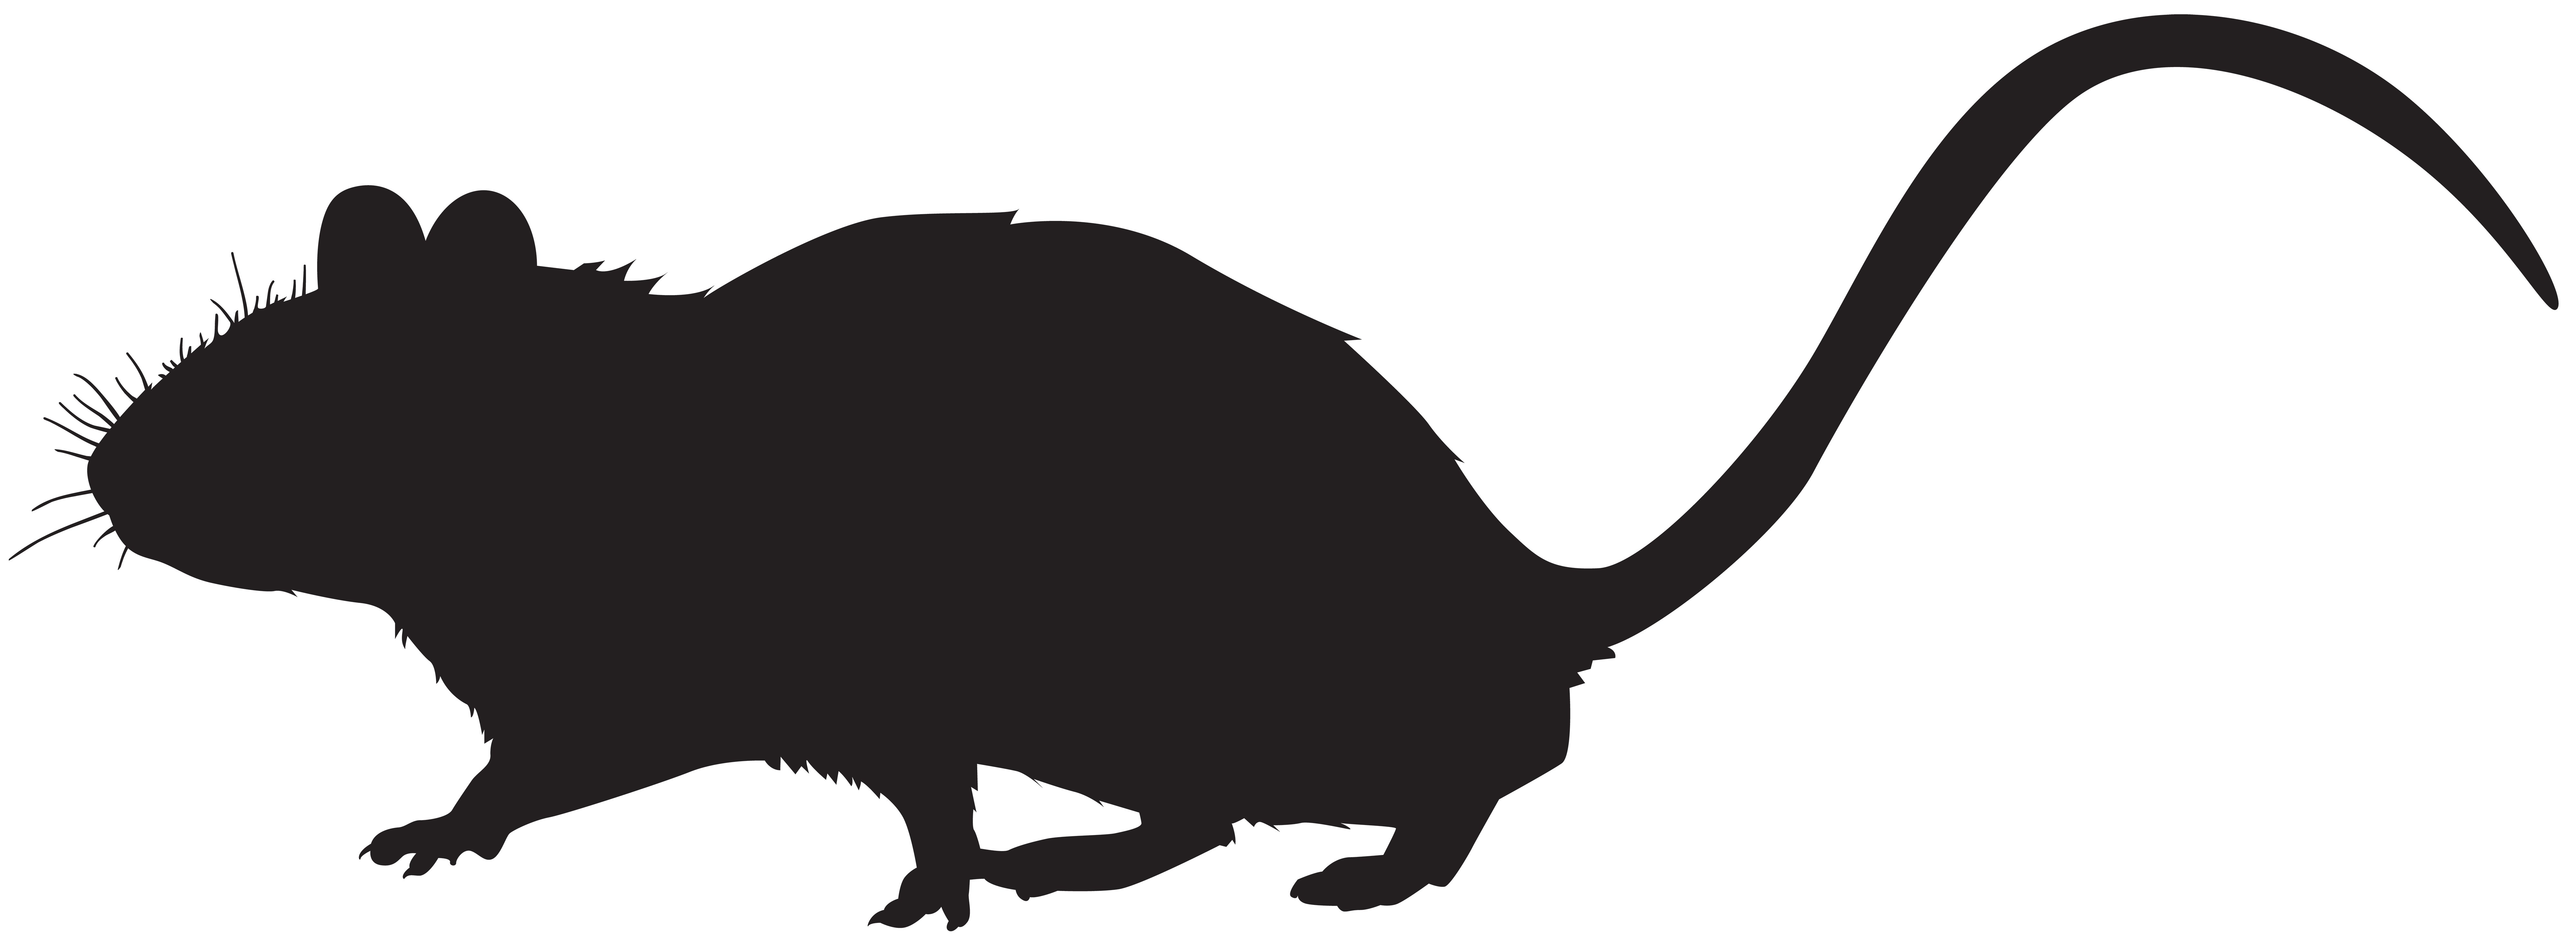 8000x2918 Mouse Silhouette Png Clip Art Imageu200b Gallery Yopriceville